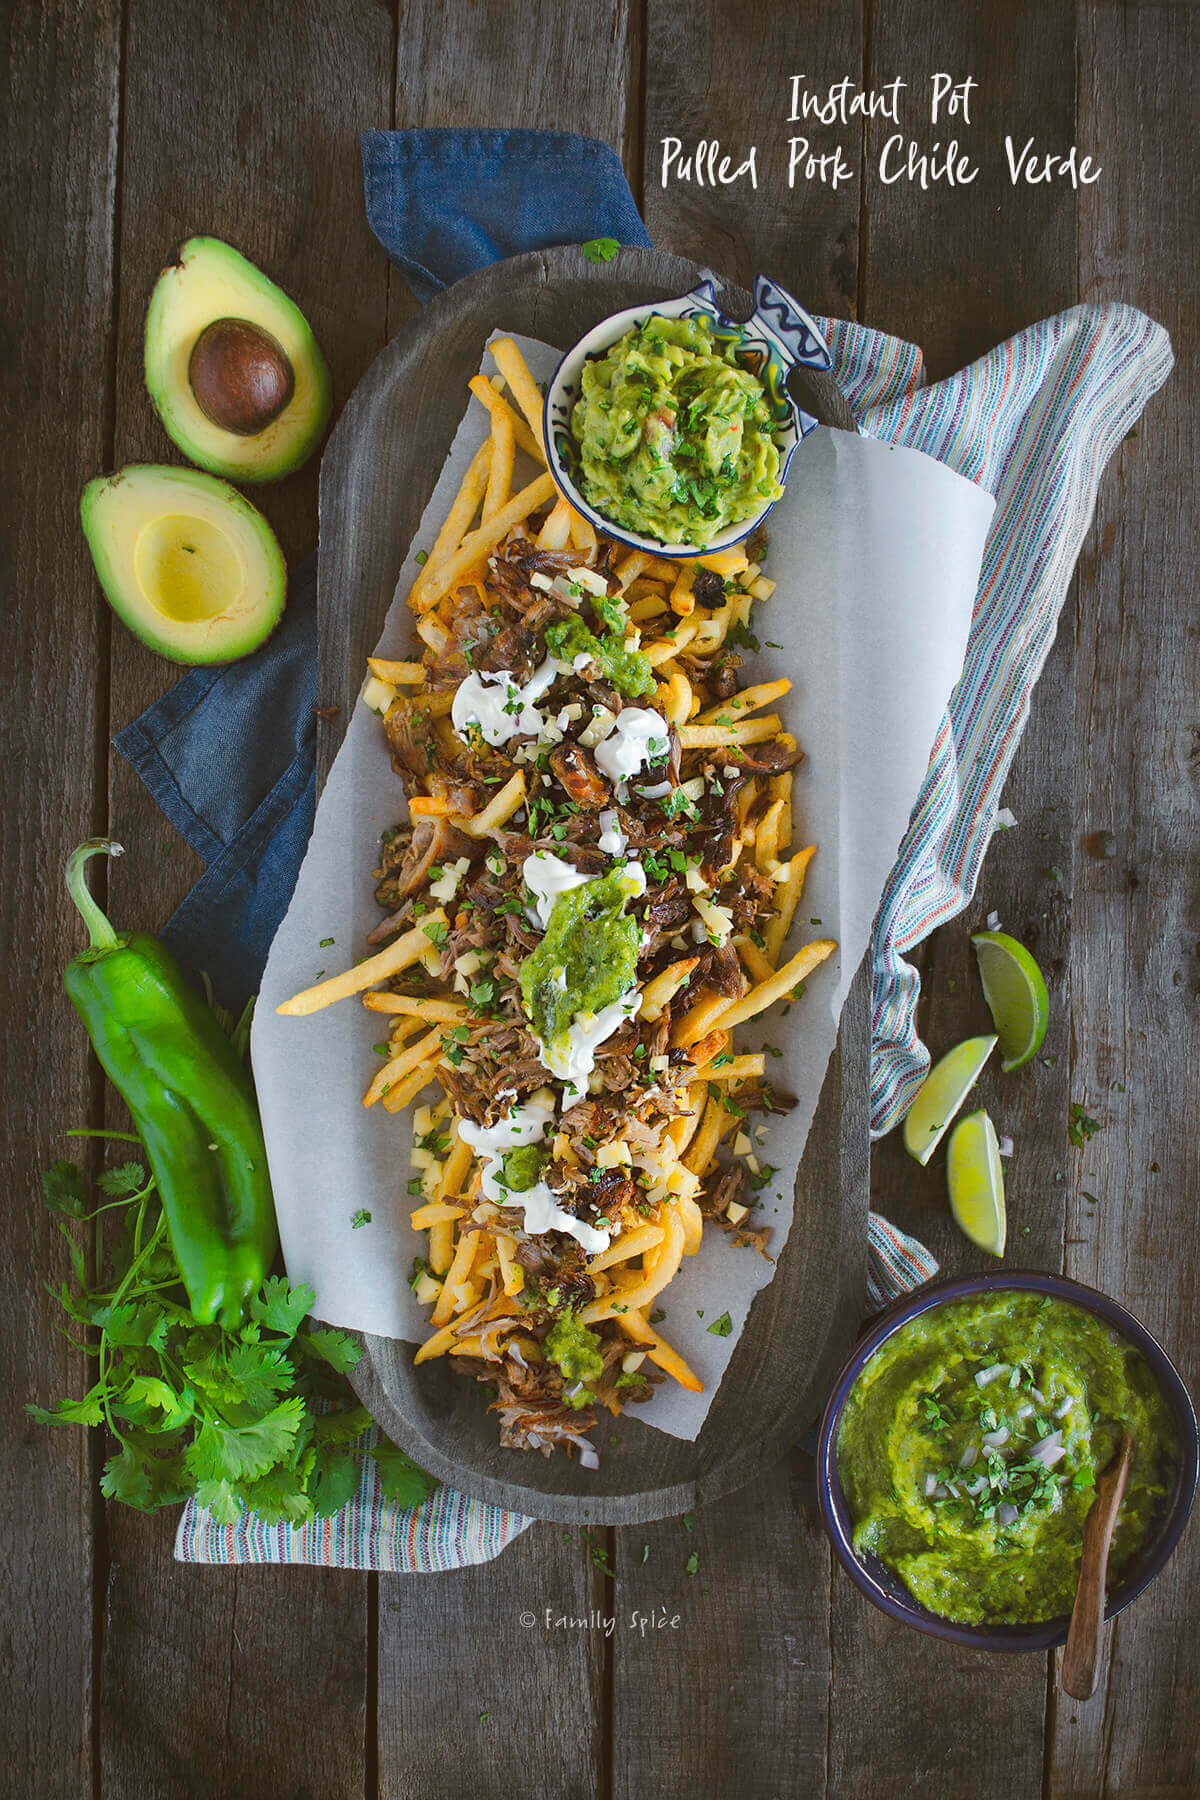 Overhead shot of a wooden tray filled with french fries topped with carnitas, sour cream and salsa verde by FamilySpice.com